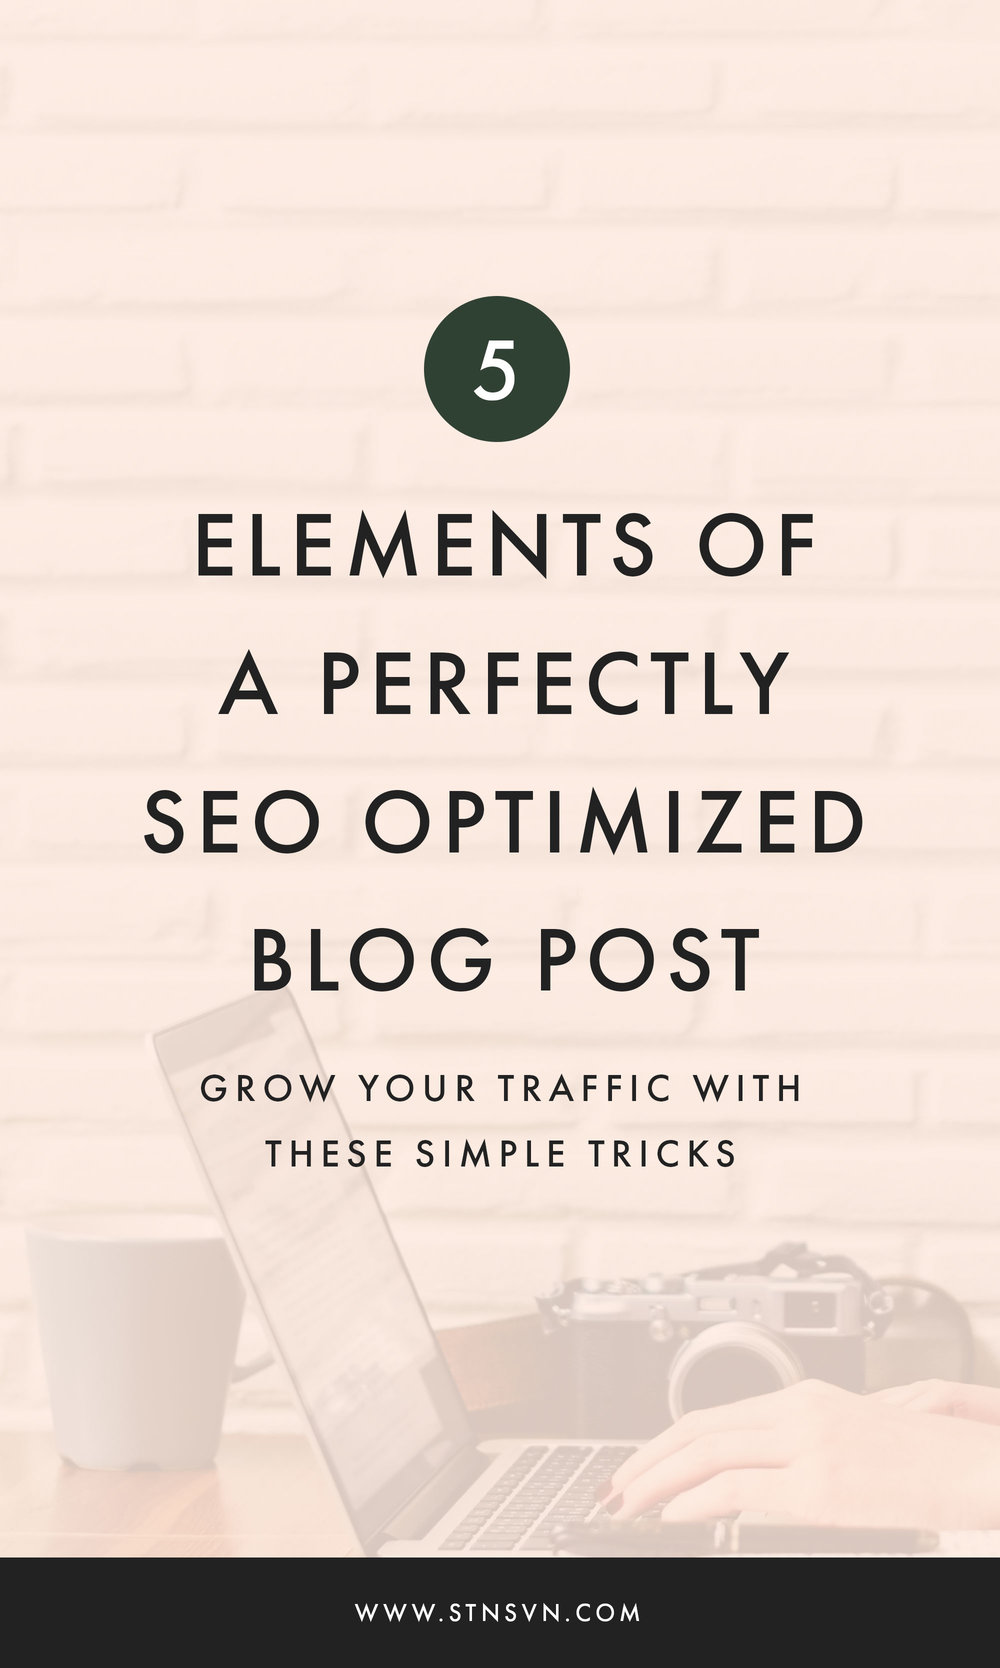 5 Elements of a Perfectly SEO Optimized Blog Post.jpeg